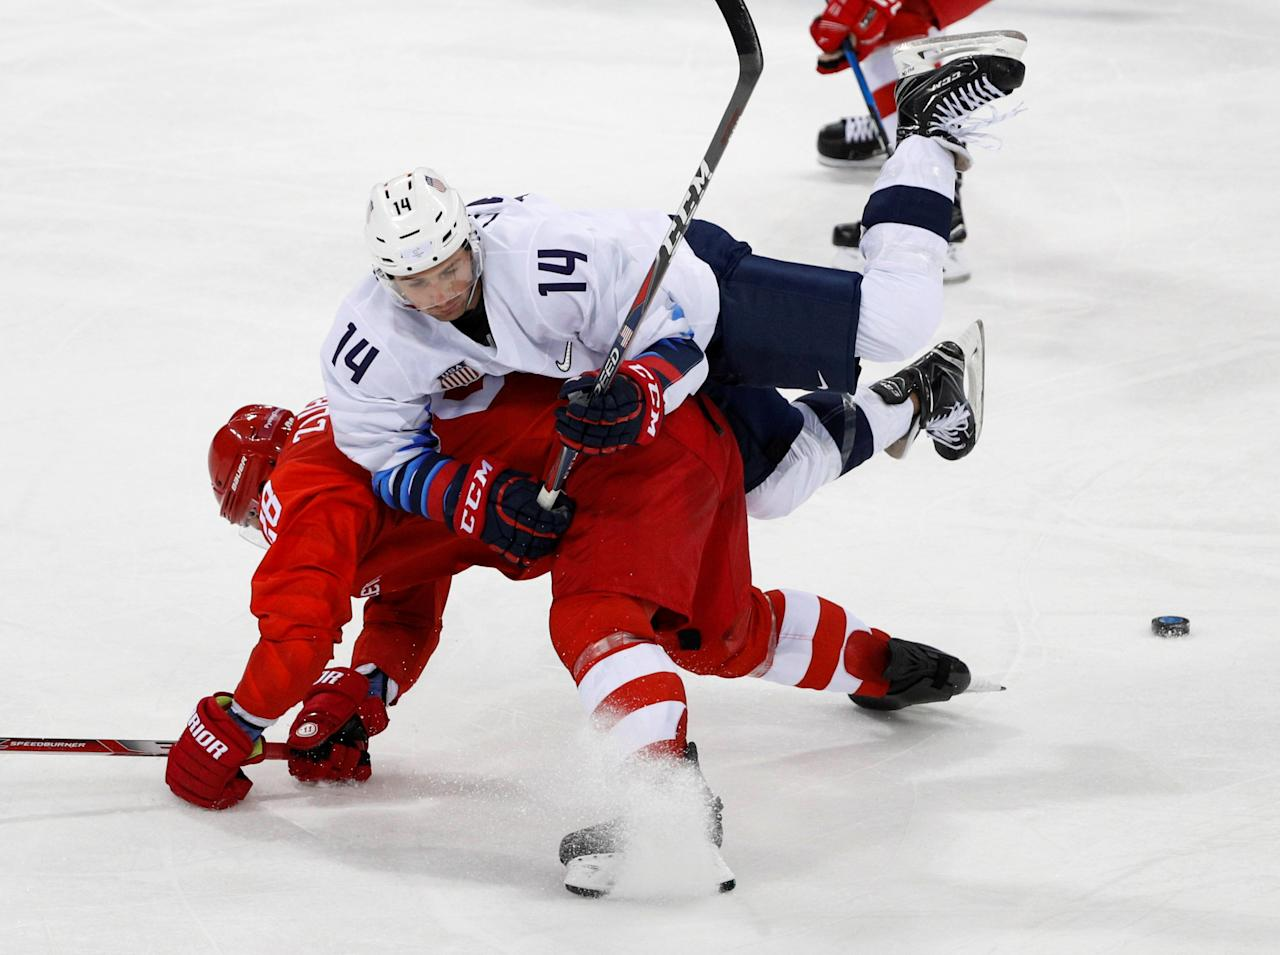 Ice Hockey - Pyeongchang 2018 Winter Olympics - Men's Preliminary Round Match - Olympic Athletes from Russia v U.S. - Gangneung Hockey Centre, Gangneung, South Korea - February 17, 2018 - Broc Little of U.S. in action with Olympic Athlete from Russia Andrei Zubarev. REUTERS/Brian Snyder     TPX IMAGES OF THE DAY